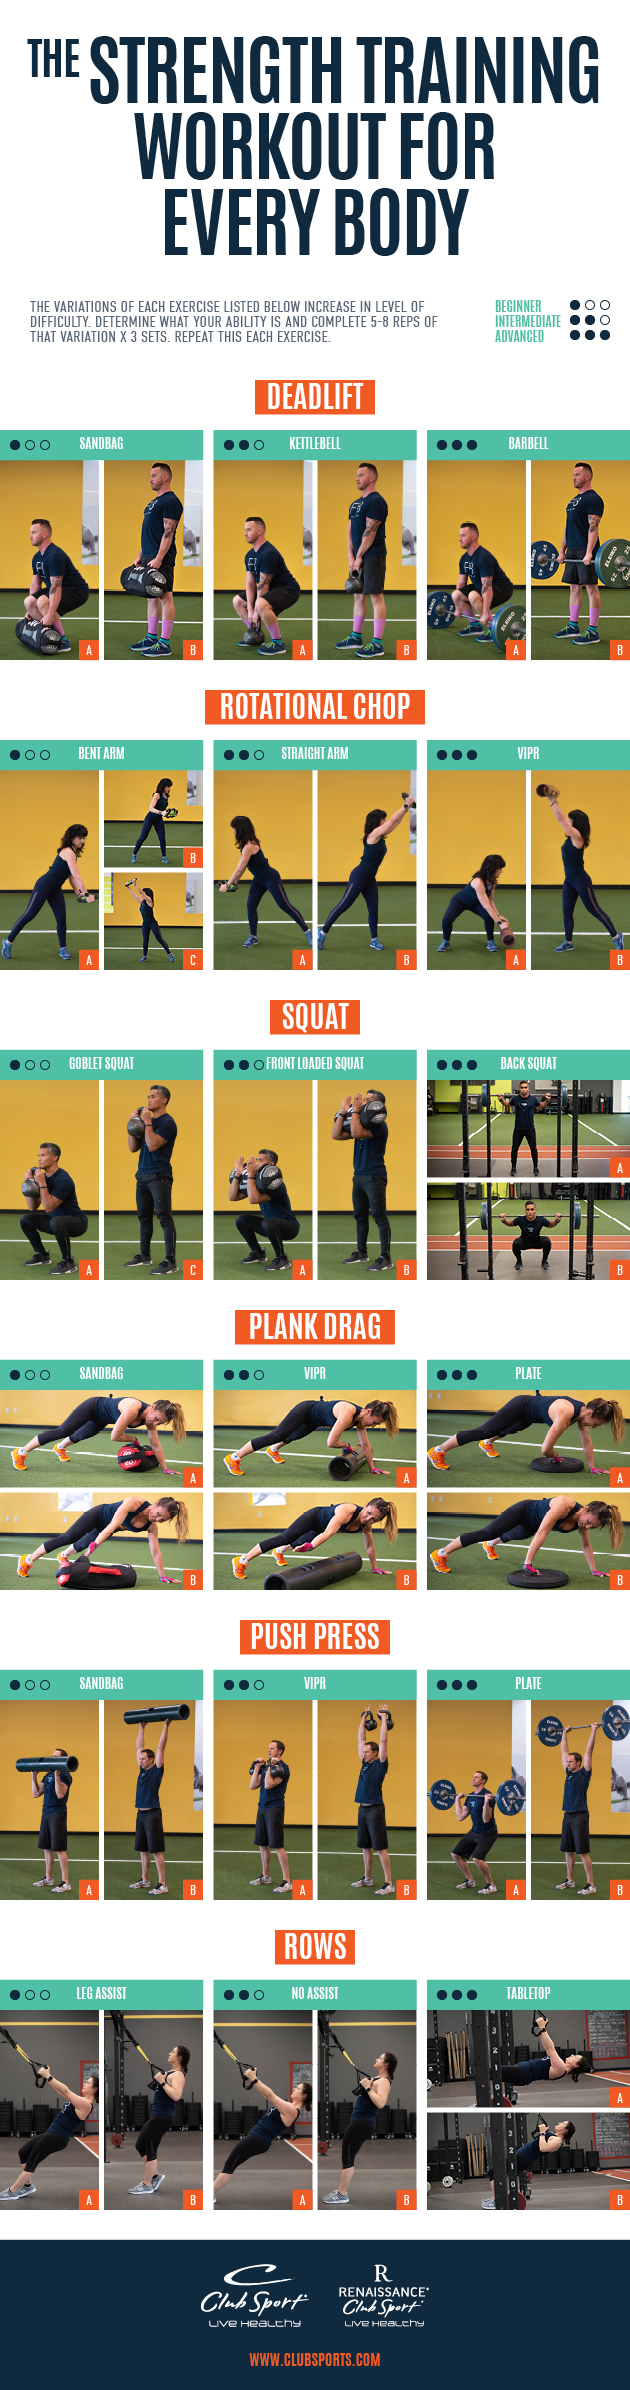 The Strength Training Workout for Every Body